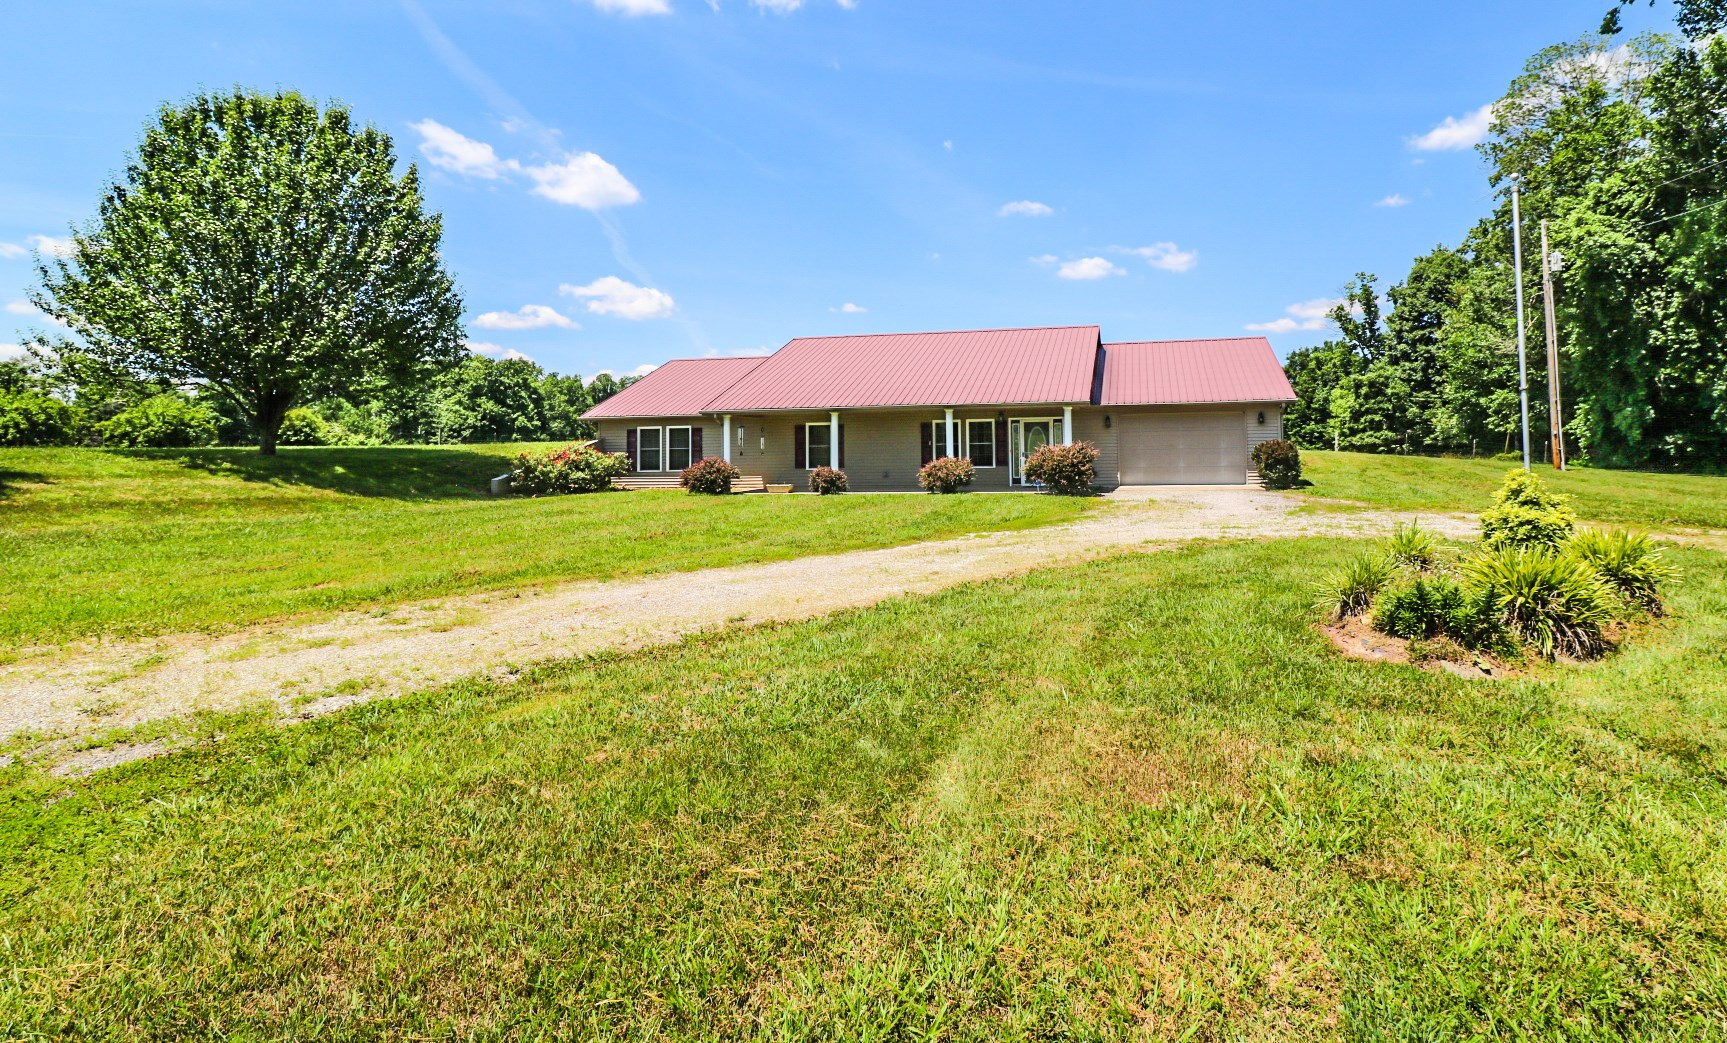 Country home for sale in Adair County Kentucky